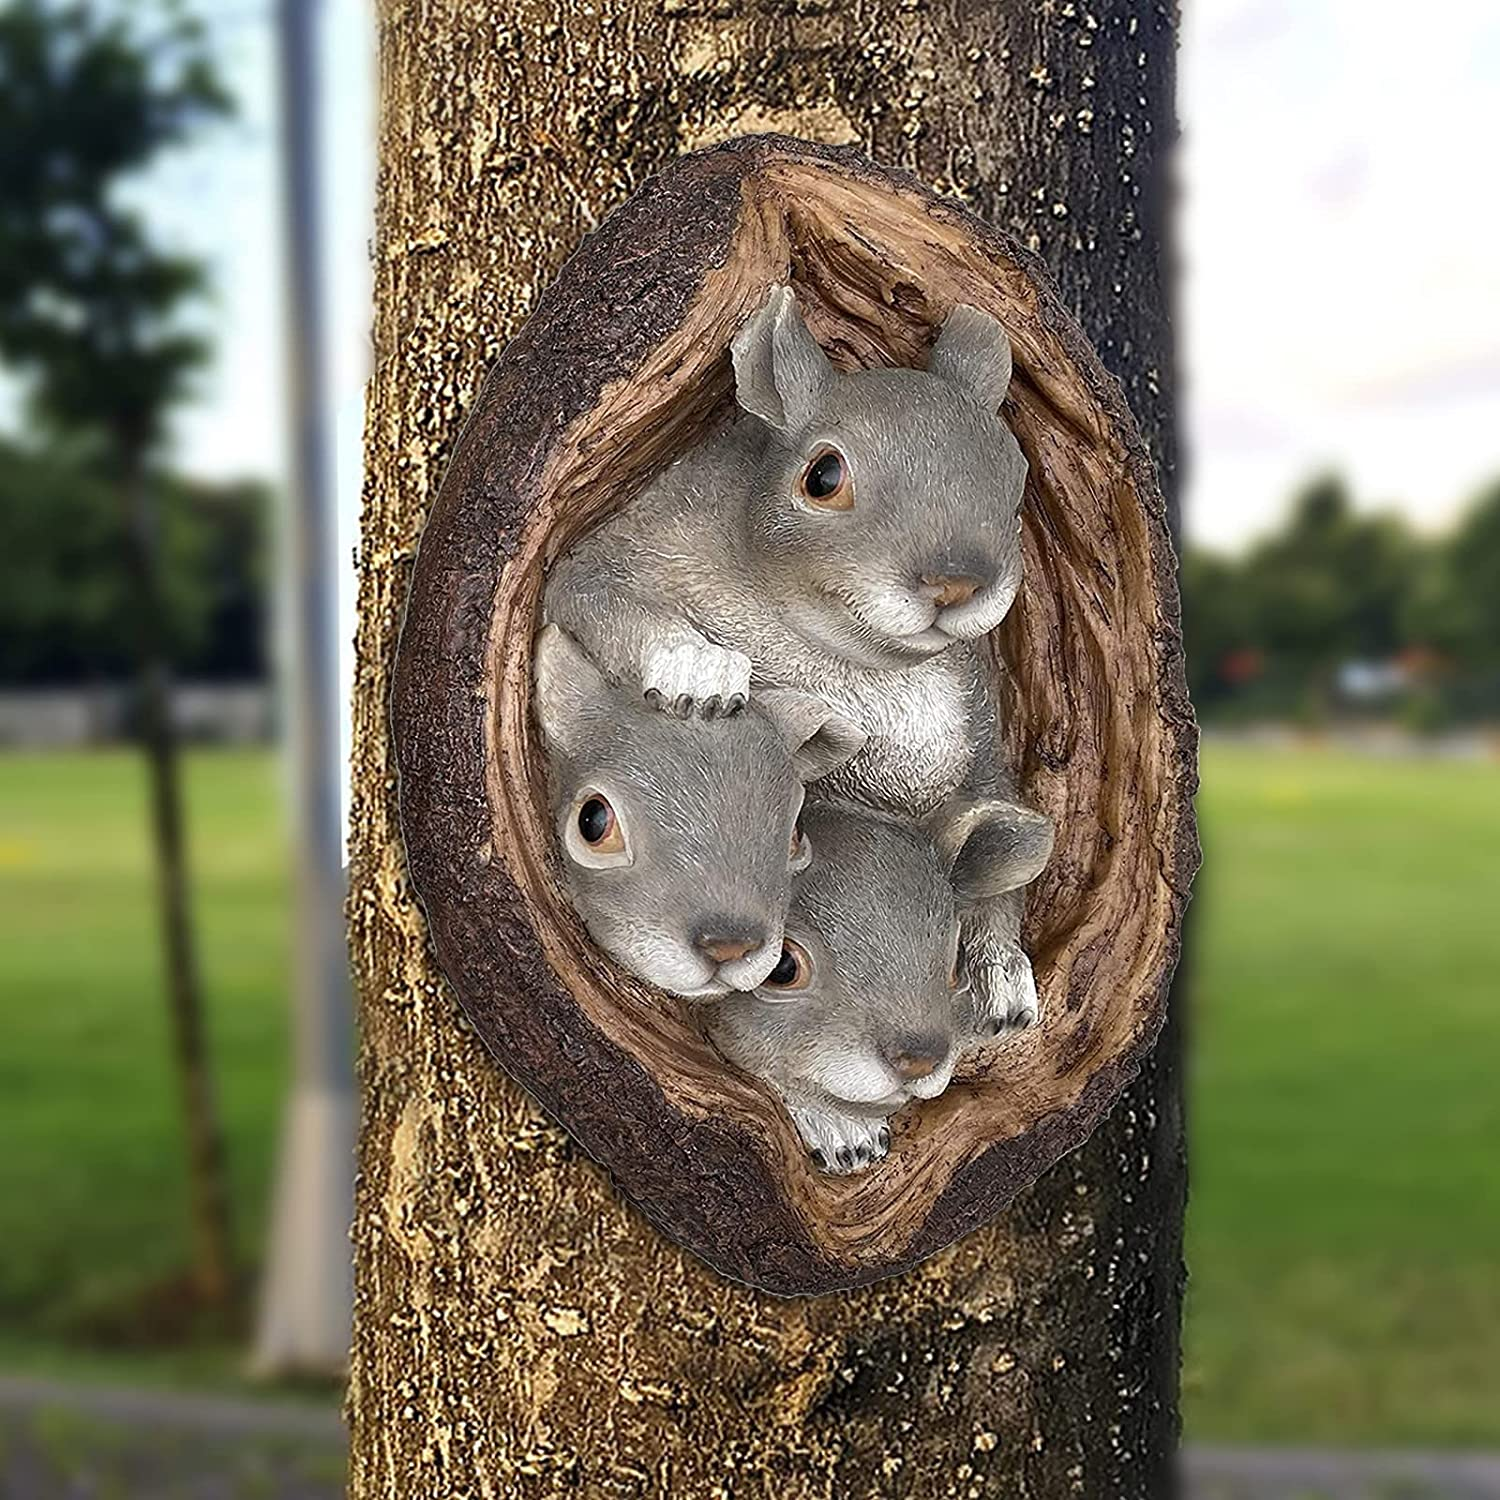 Tree Faces Decor Outdoor,Cartoon Squirrel Statue Tree Wall Decor, The Easter Squirrel Statue Made of Resin Will Make Your Yard Unique ,for Indoor or Outdoor Decor Festival Decoration